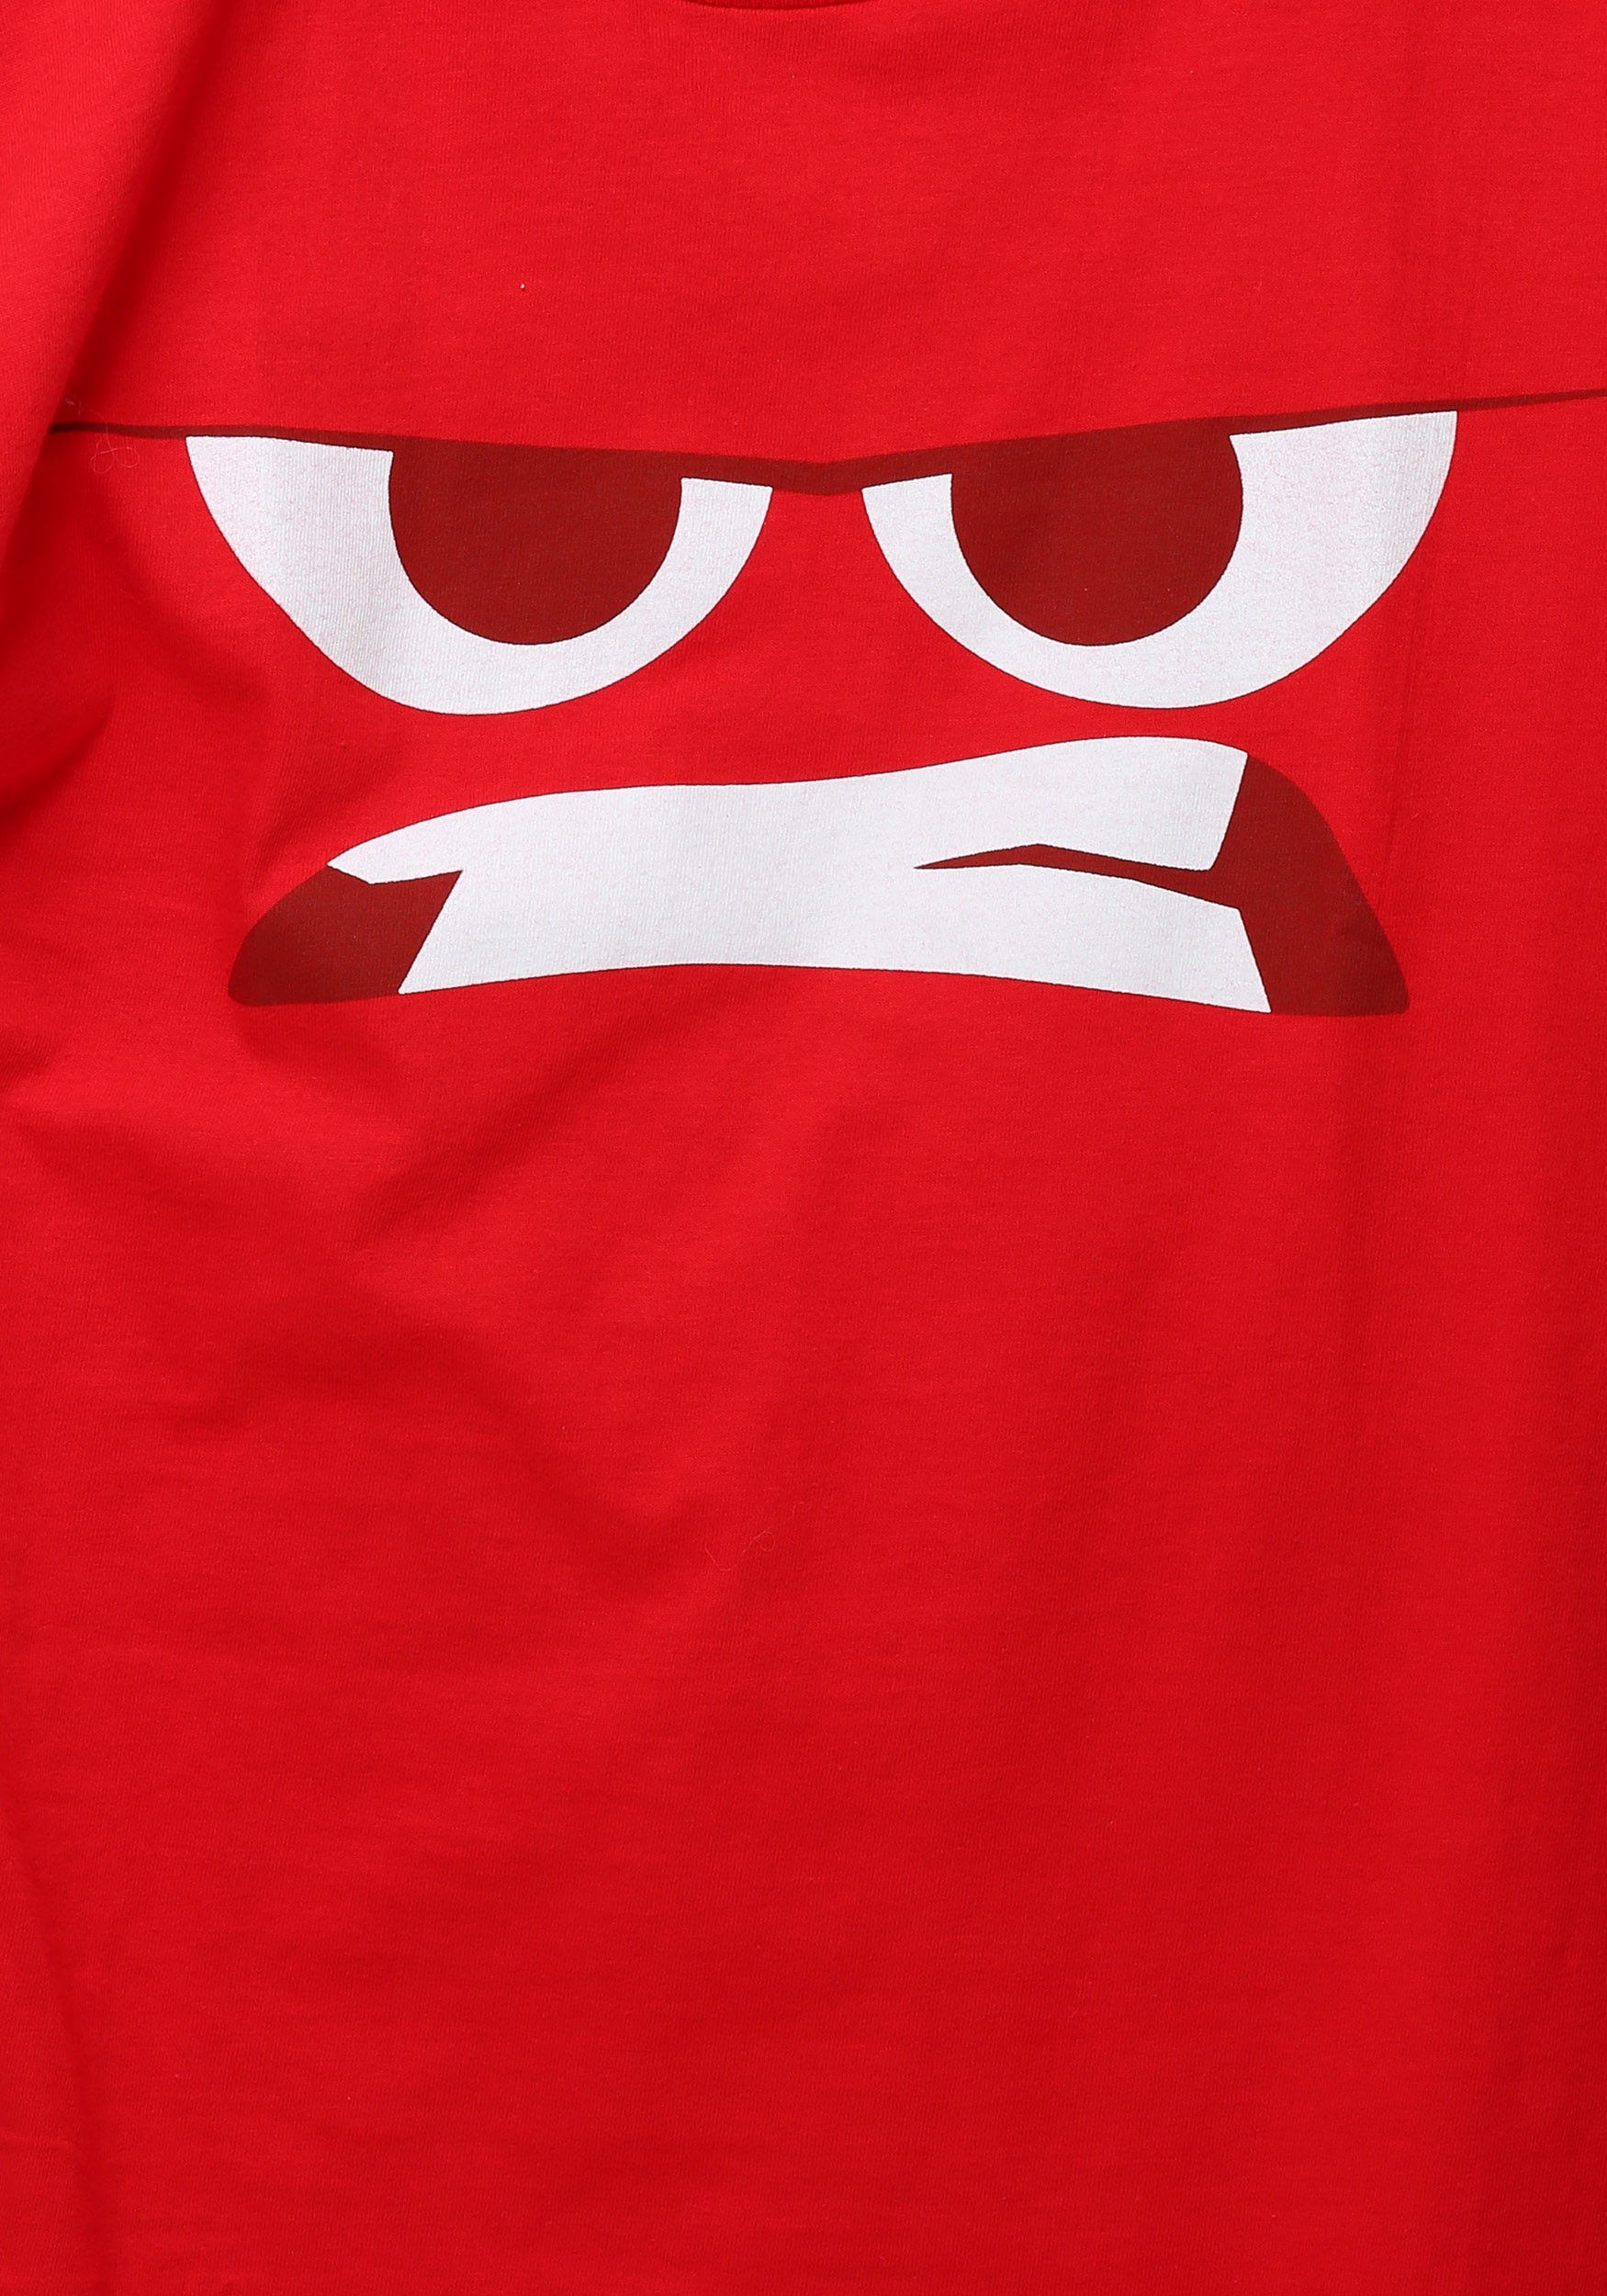 Inside Out Anger Face T Shirt